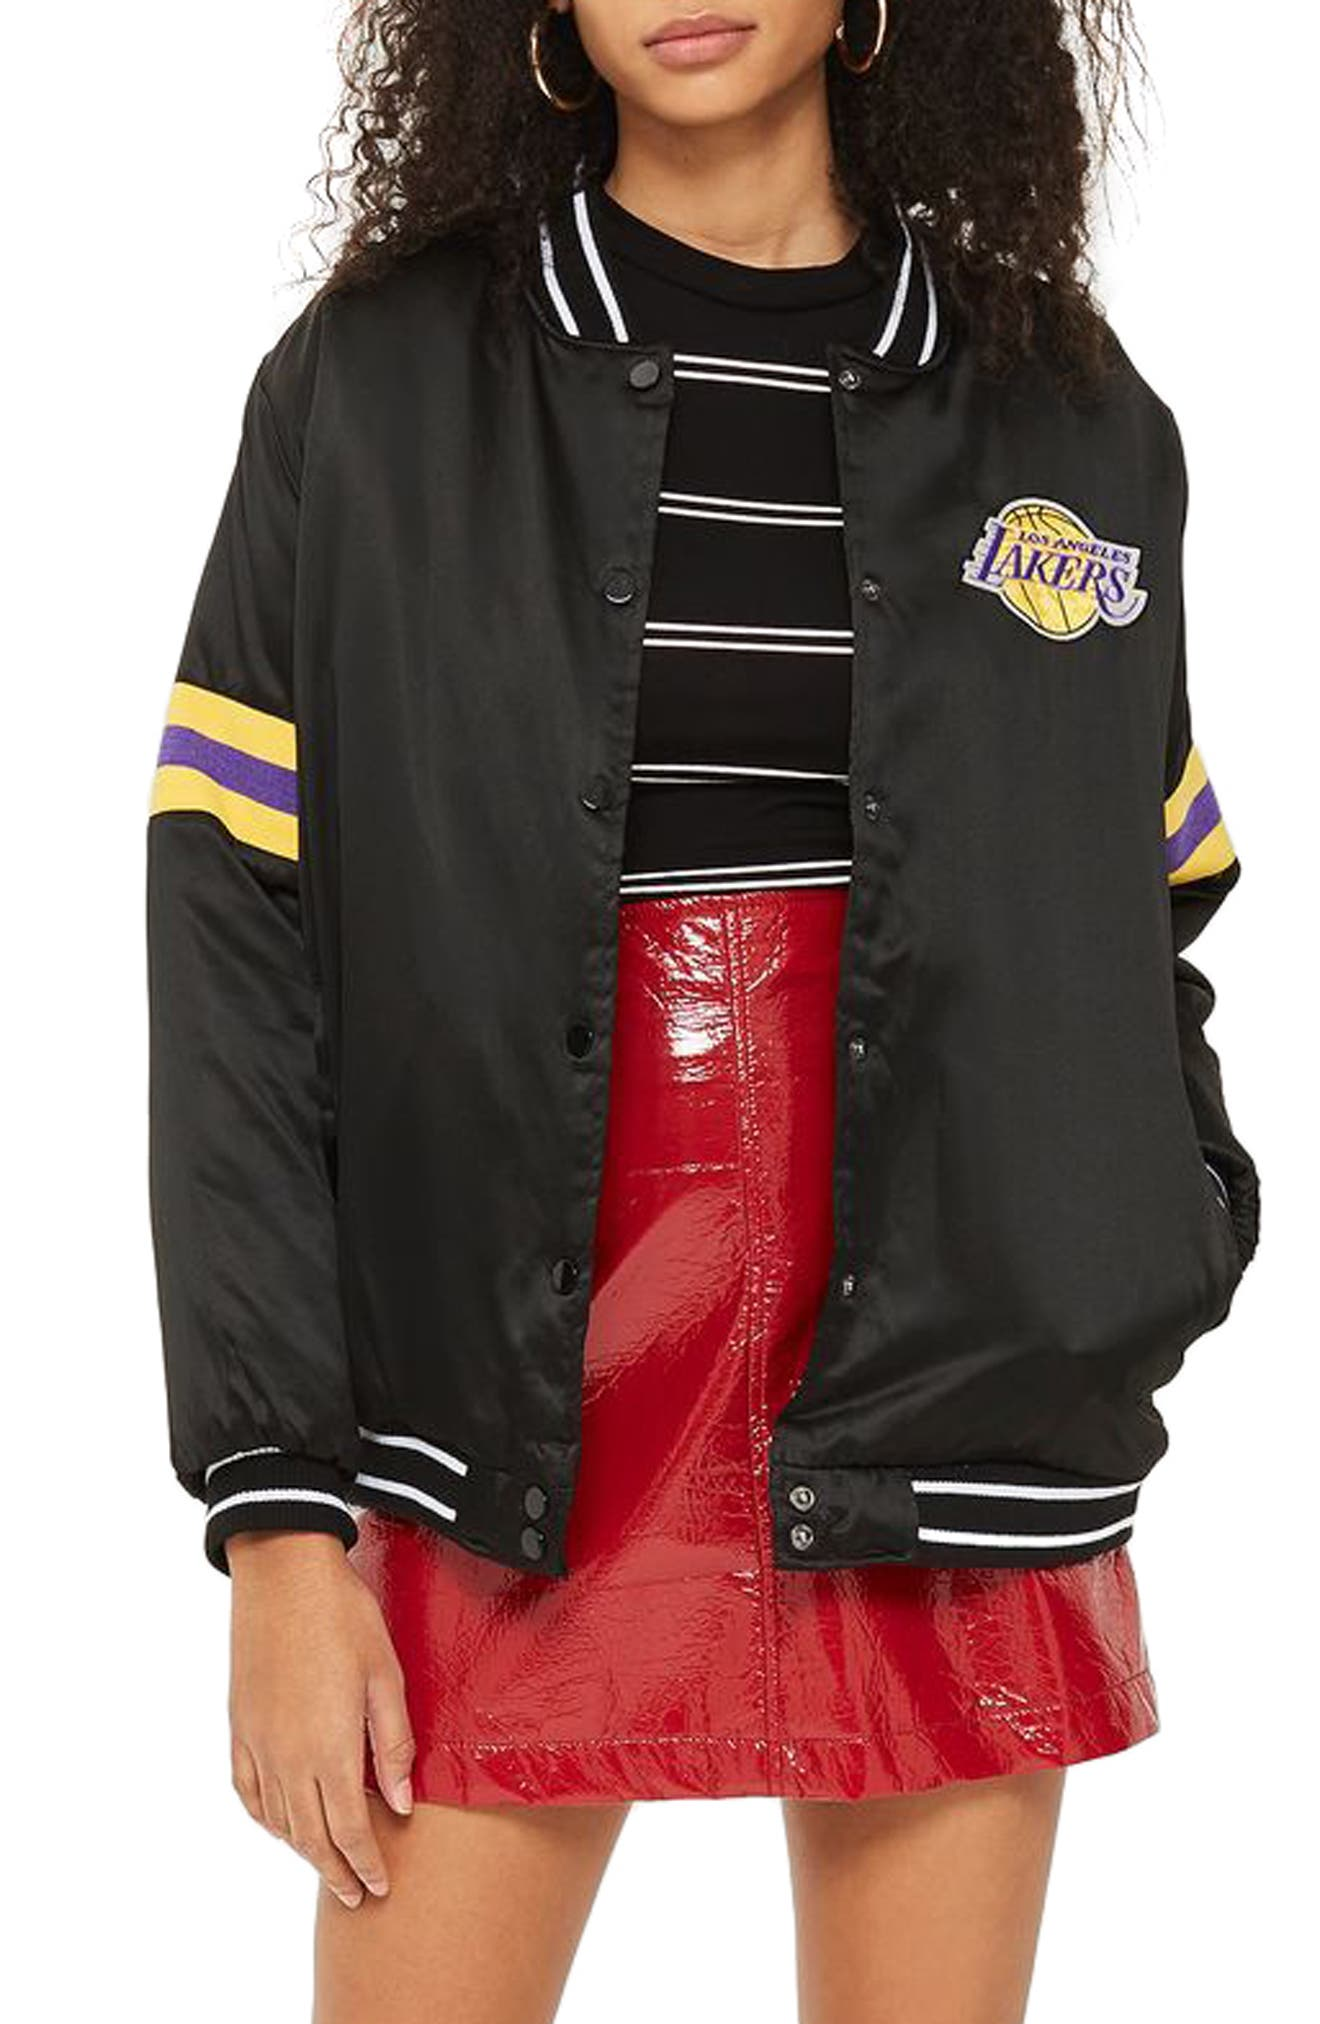 Alternate Image 1 Selected - Topshop x UNK Lakers Bomber Jacket